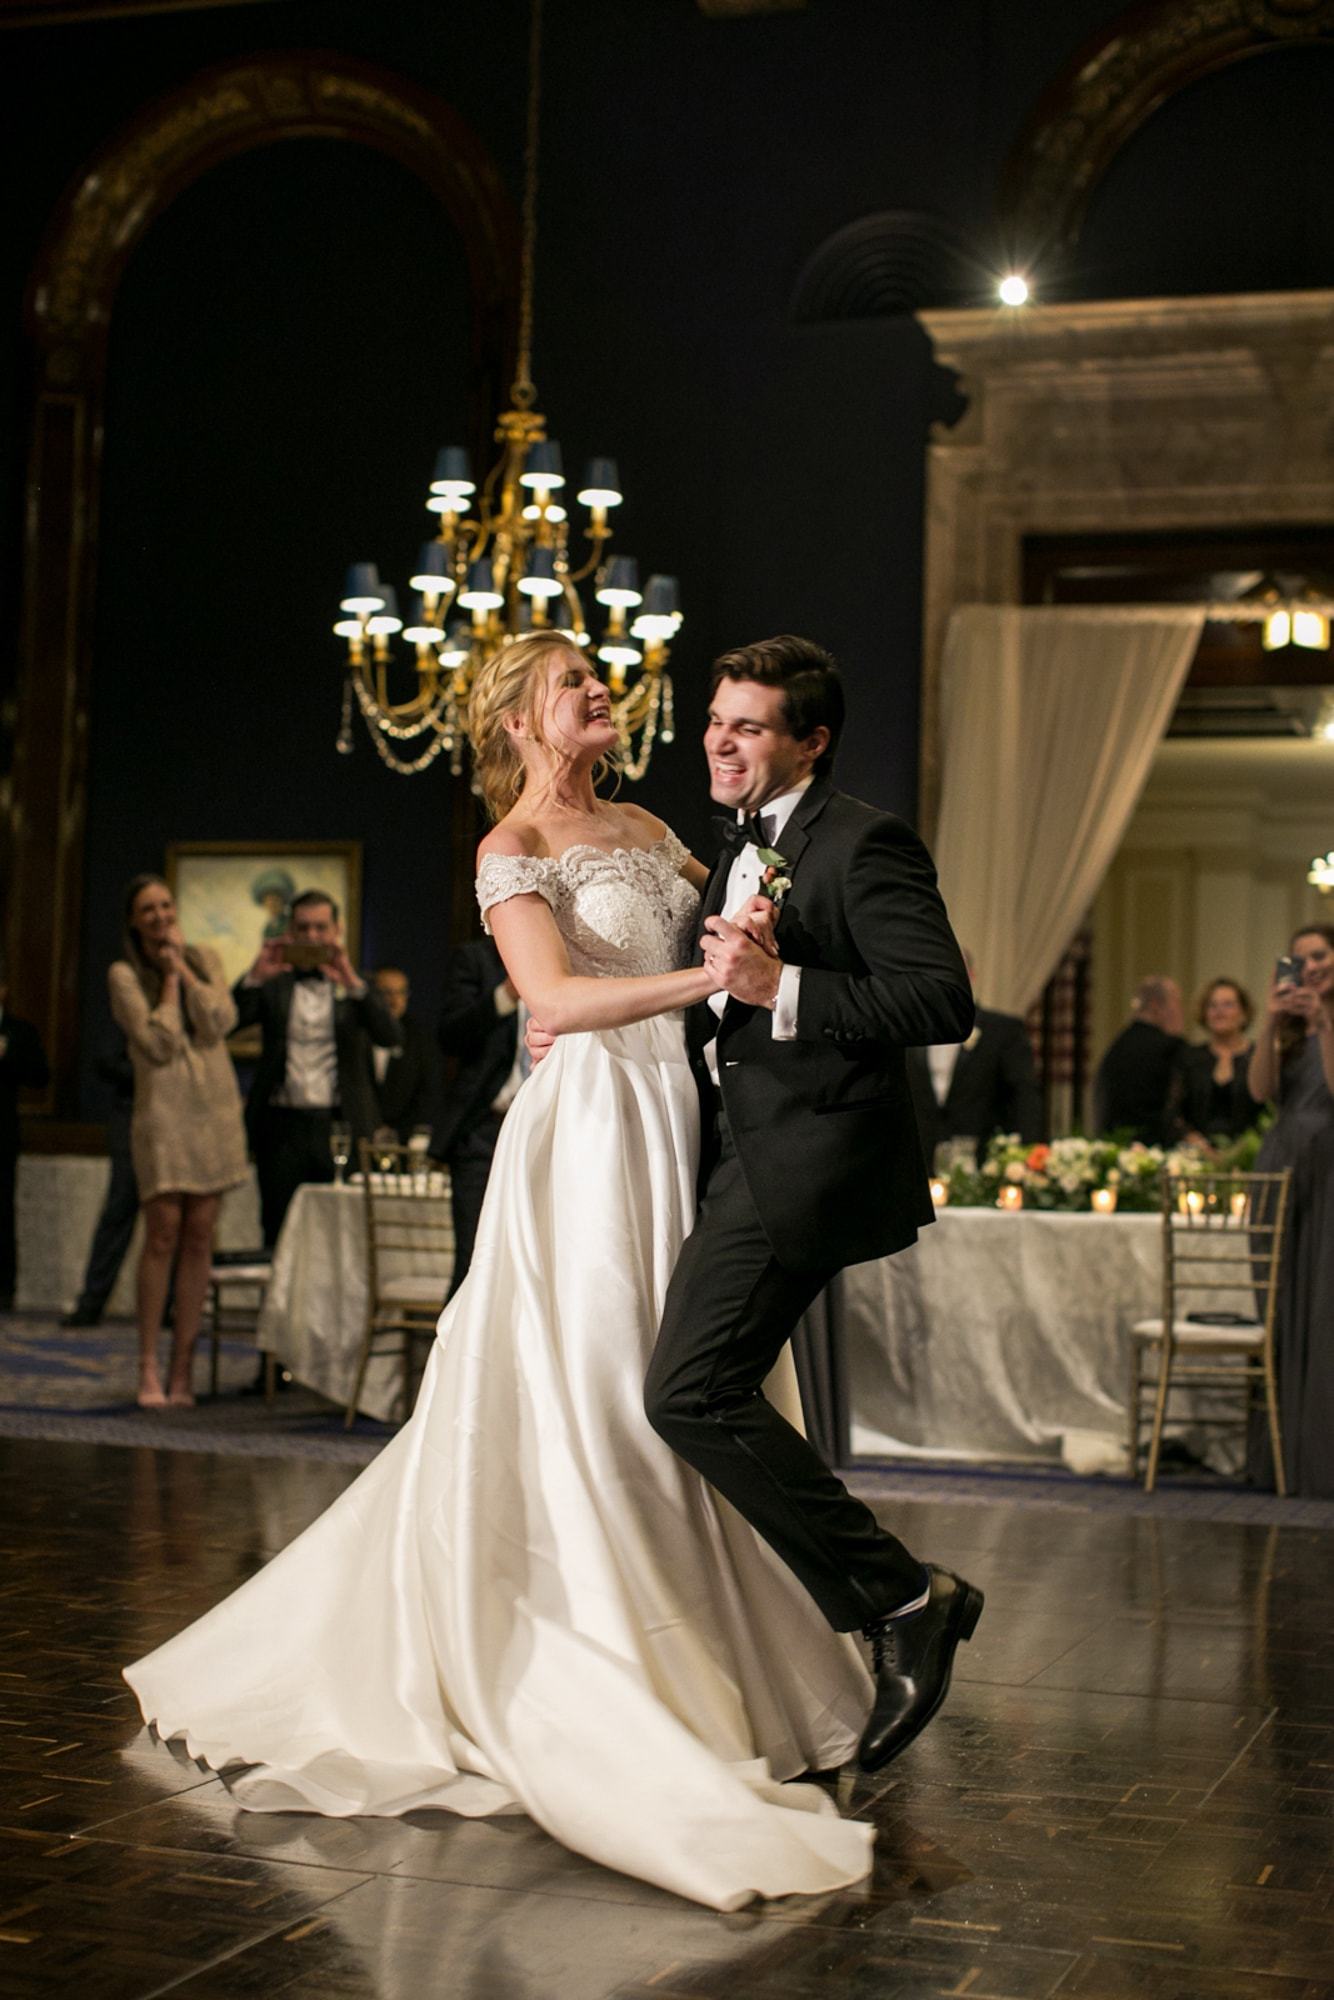 Groom sings during first dance at Union League Club